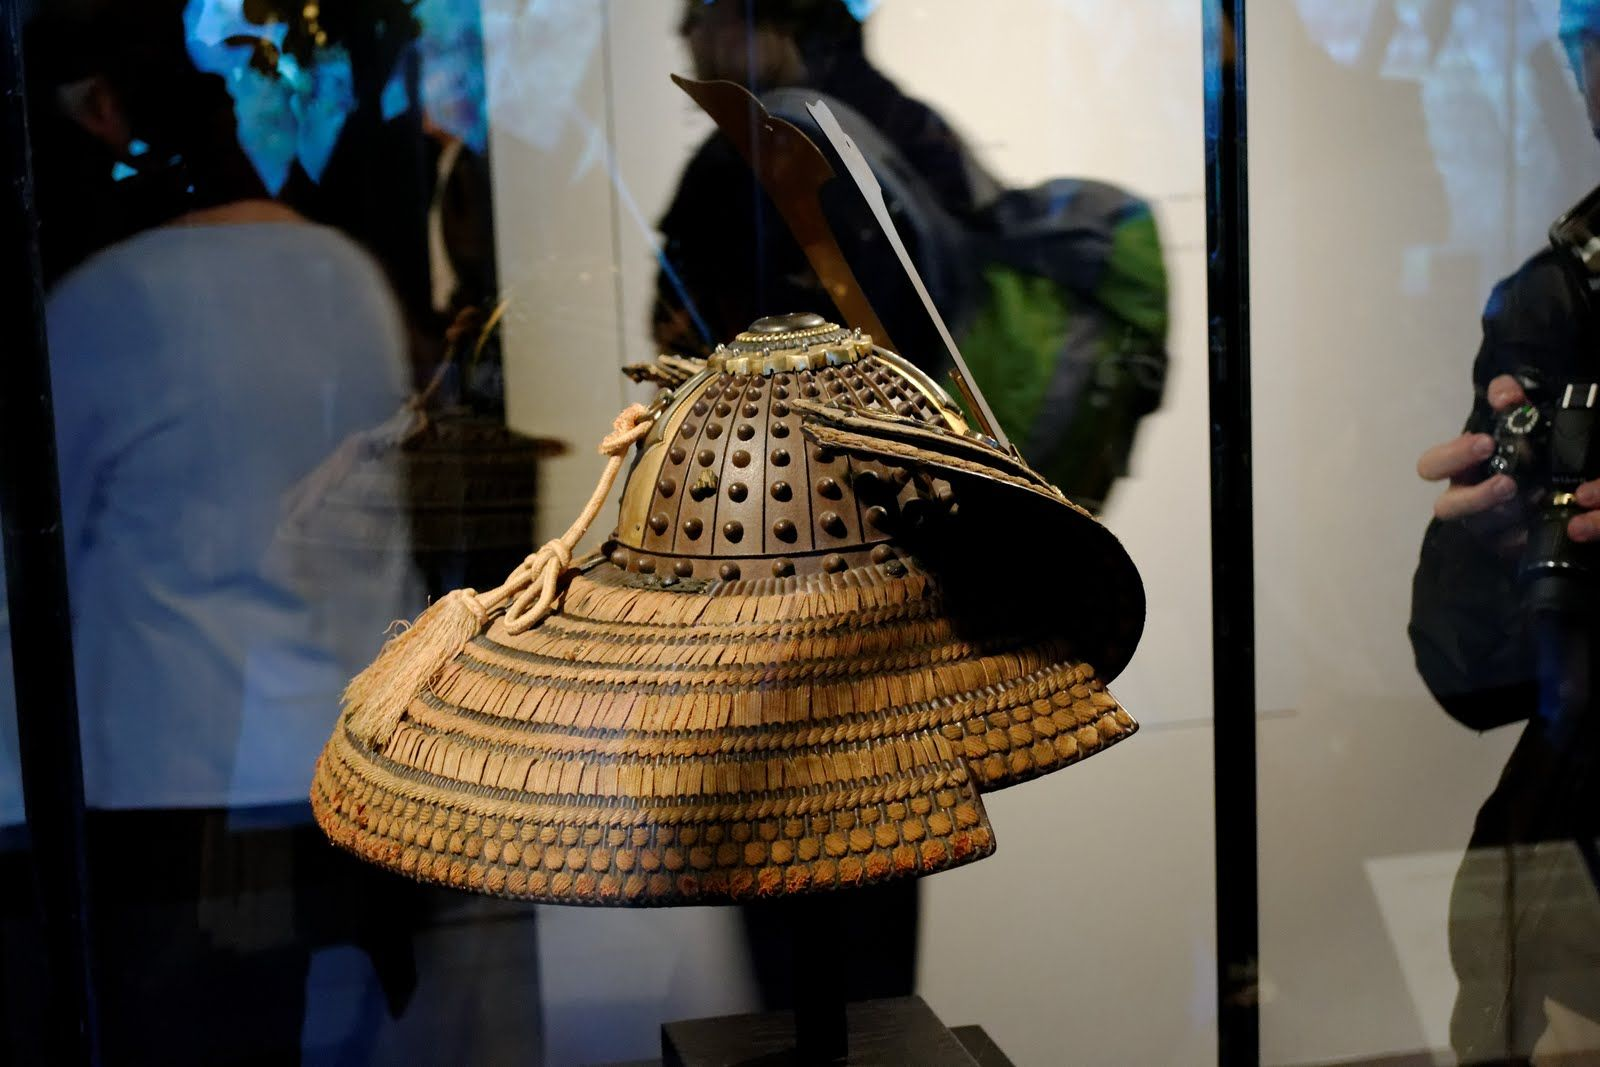 """boshi-suji-bachi kabuto (extruding rivets and ridges) The """"Samurai:Armor of the Warrior"""" exhibit 2011, Musée du Quai Branly, Paris France, from The Ann and Gabriel Barbier-Mueller Museum, Dallas Texas. - I love the shikoro (skirt) on this one"""